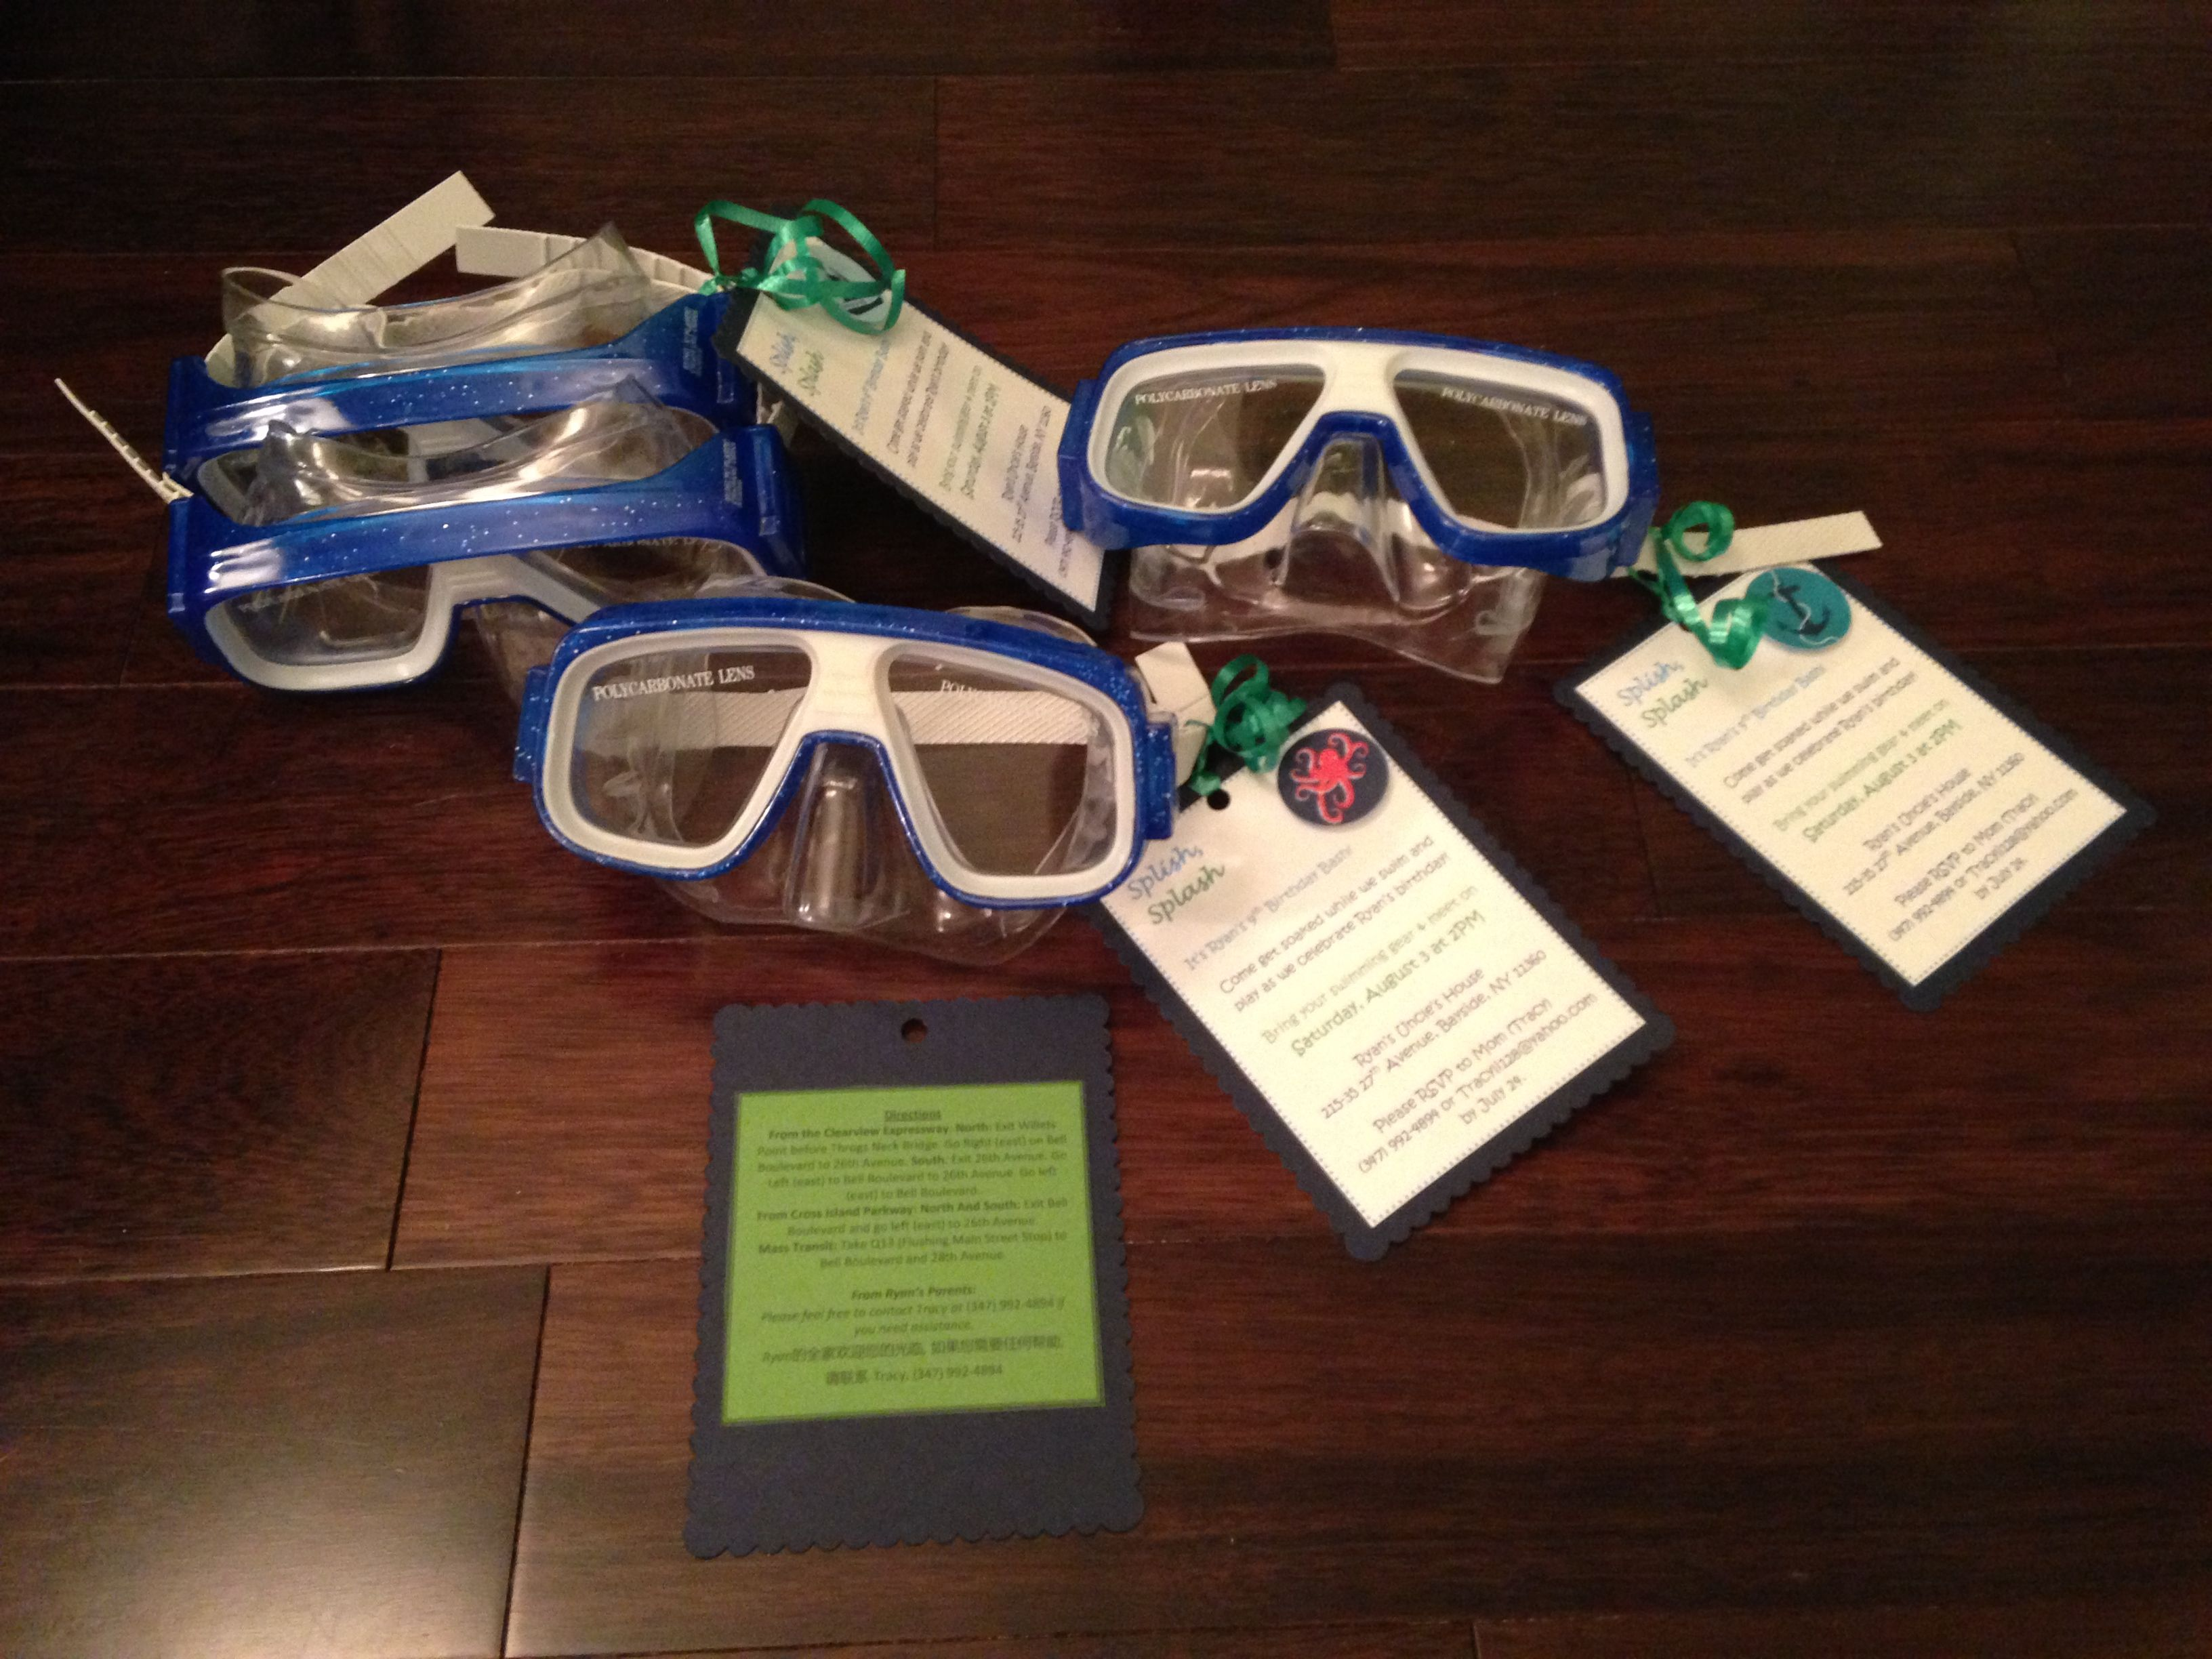 Pool party invitation snorkeling goggles hand delivered